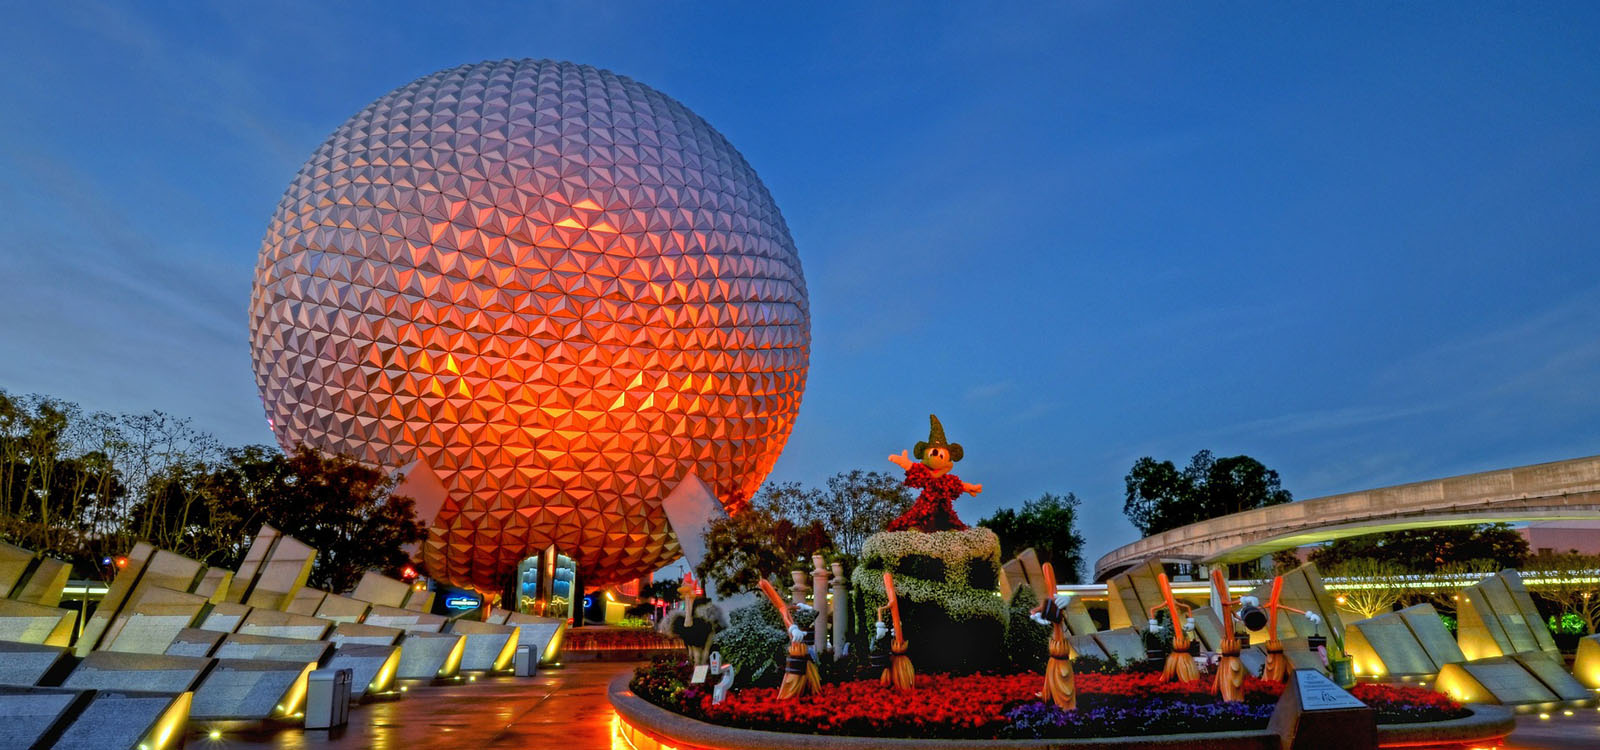 Epcot theme park with globe